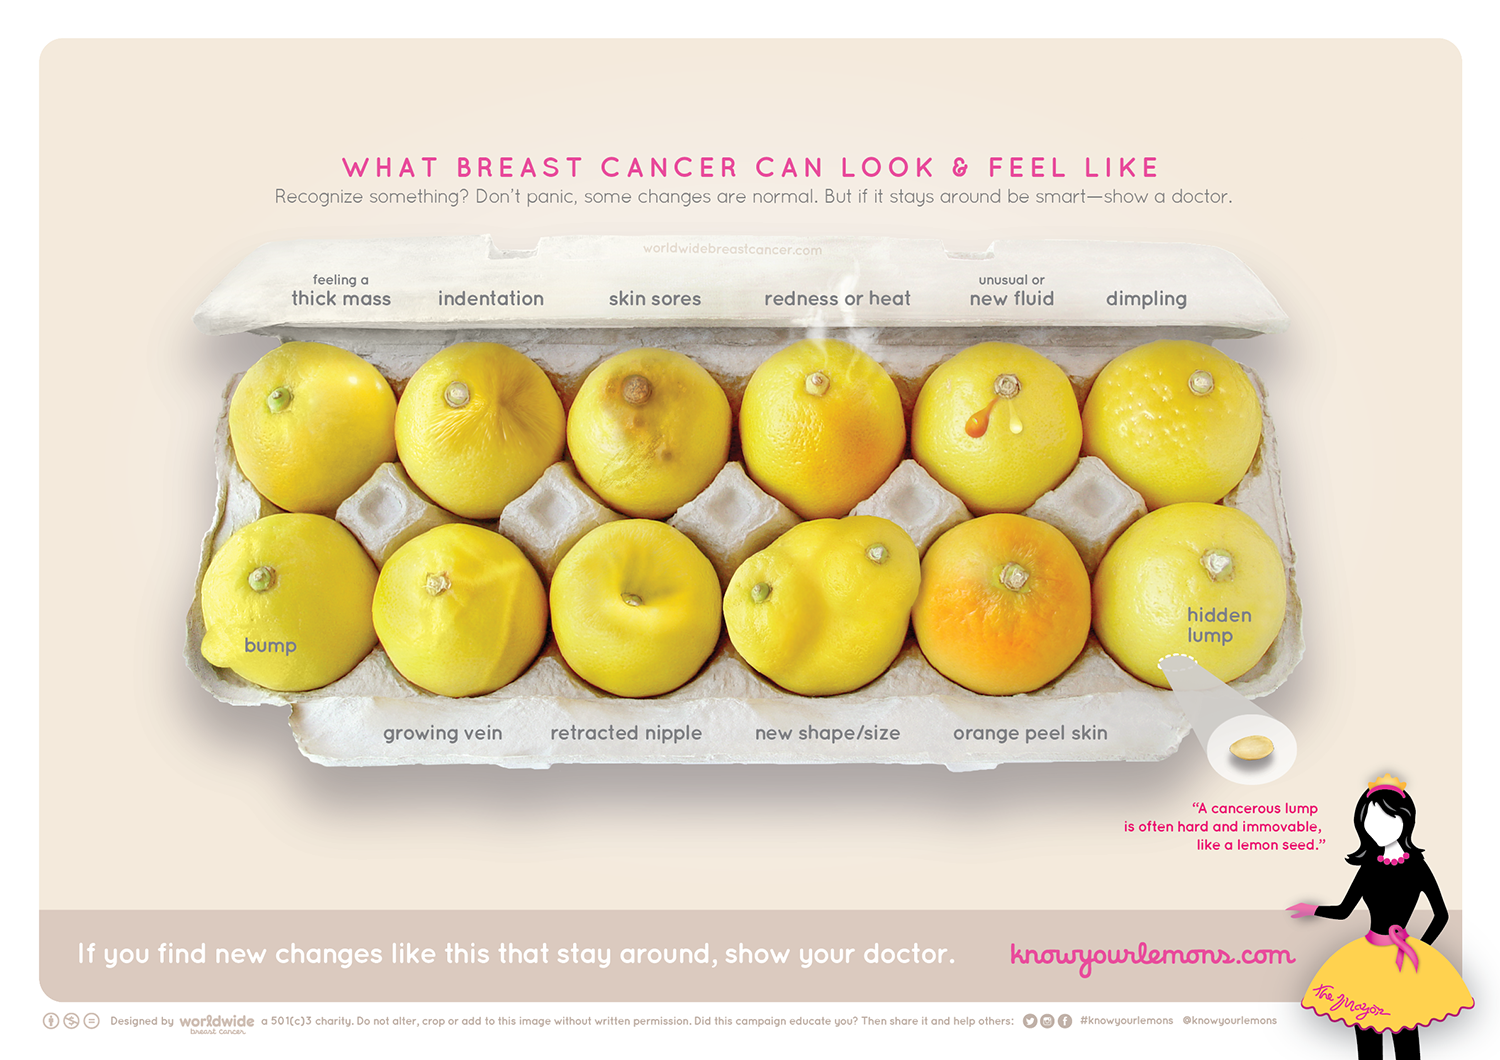 signs of cancer shown on lemons